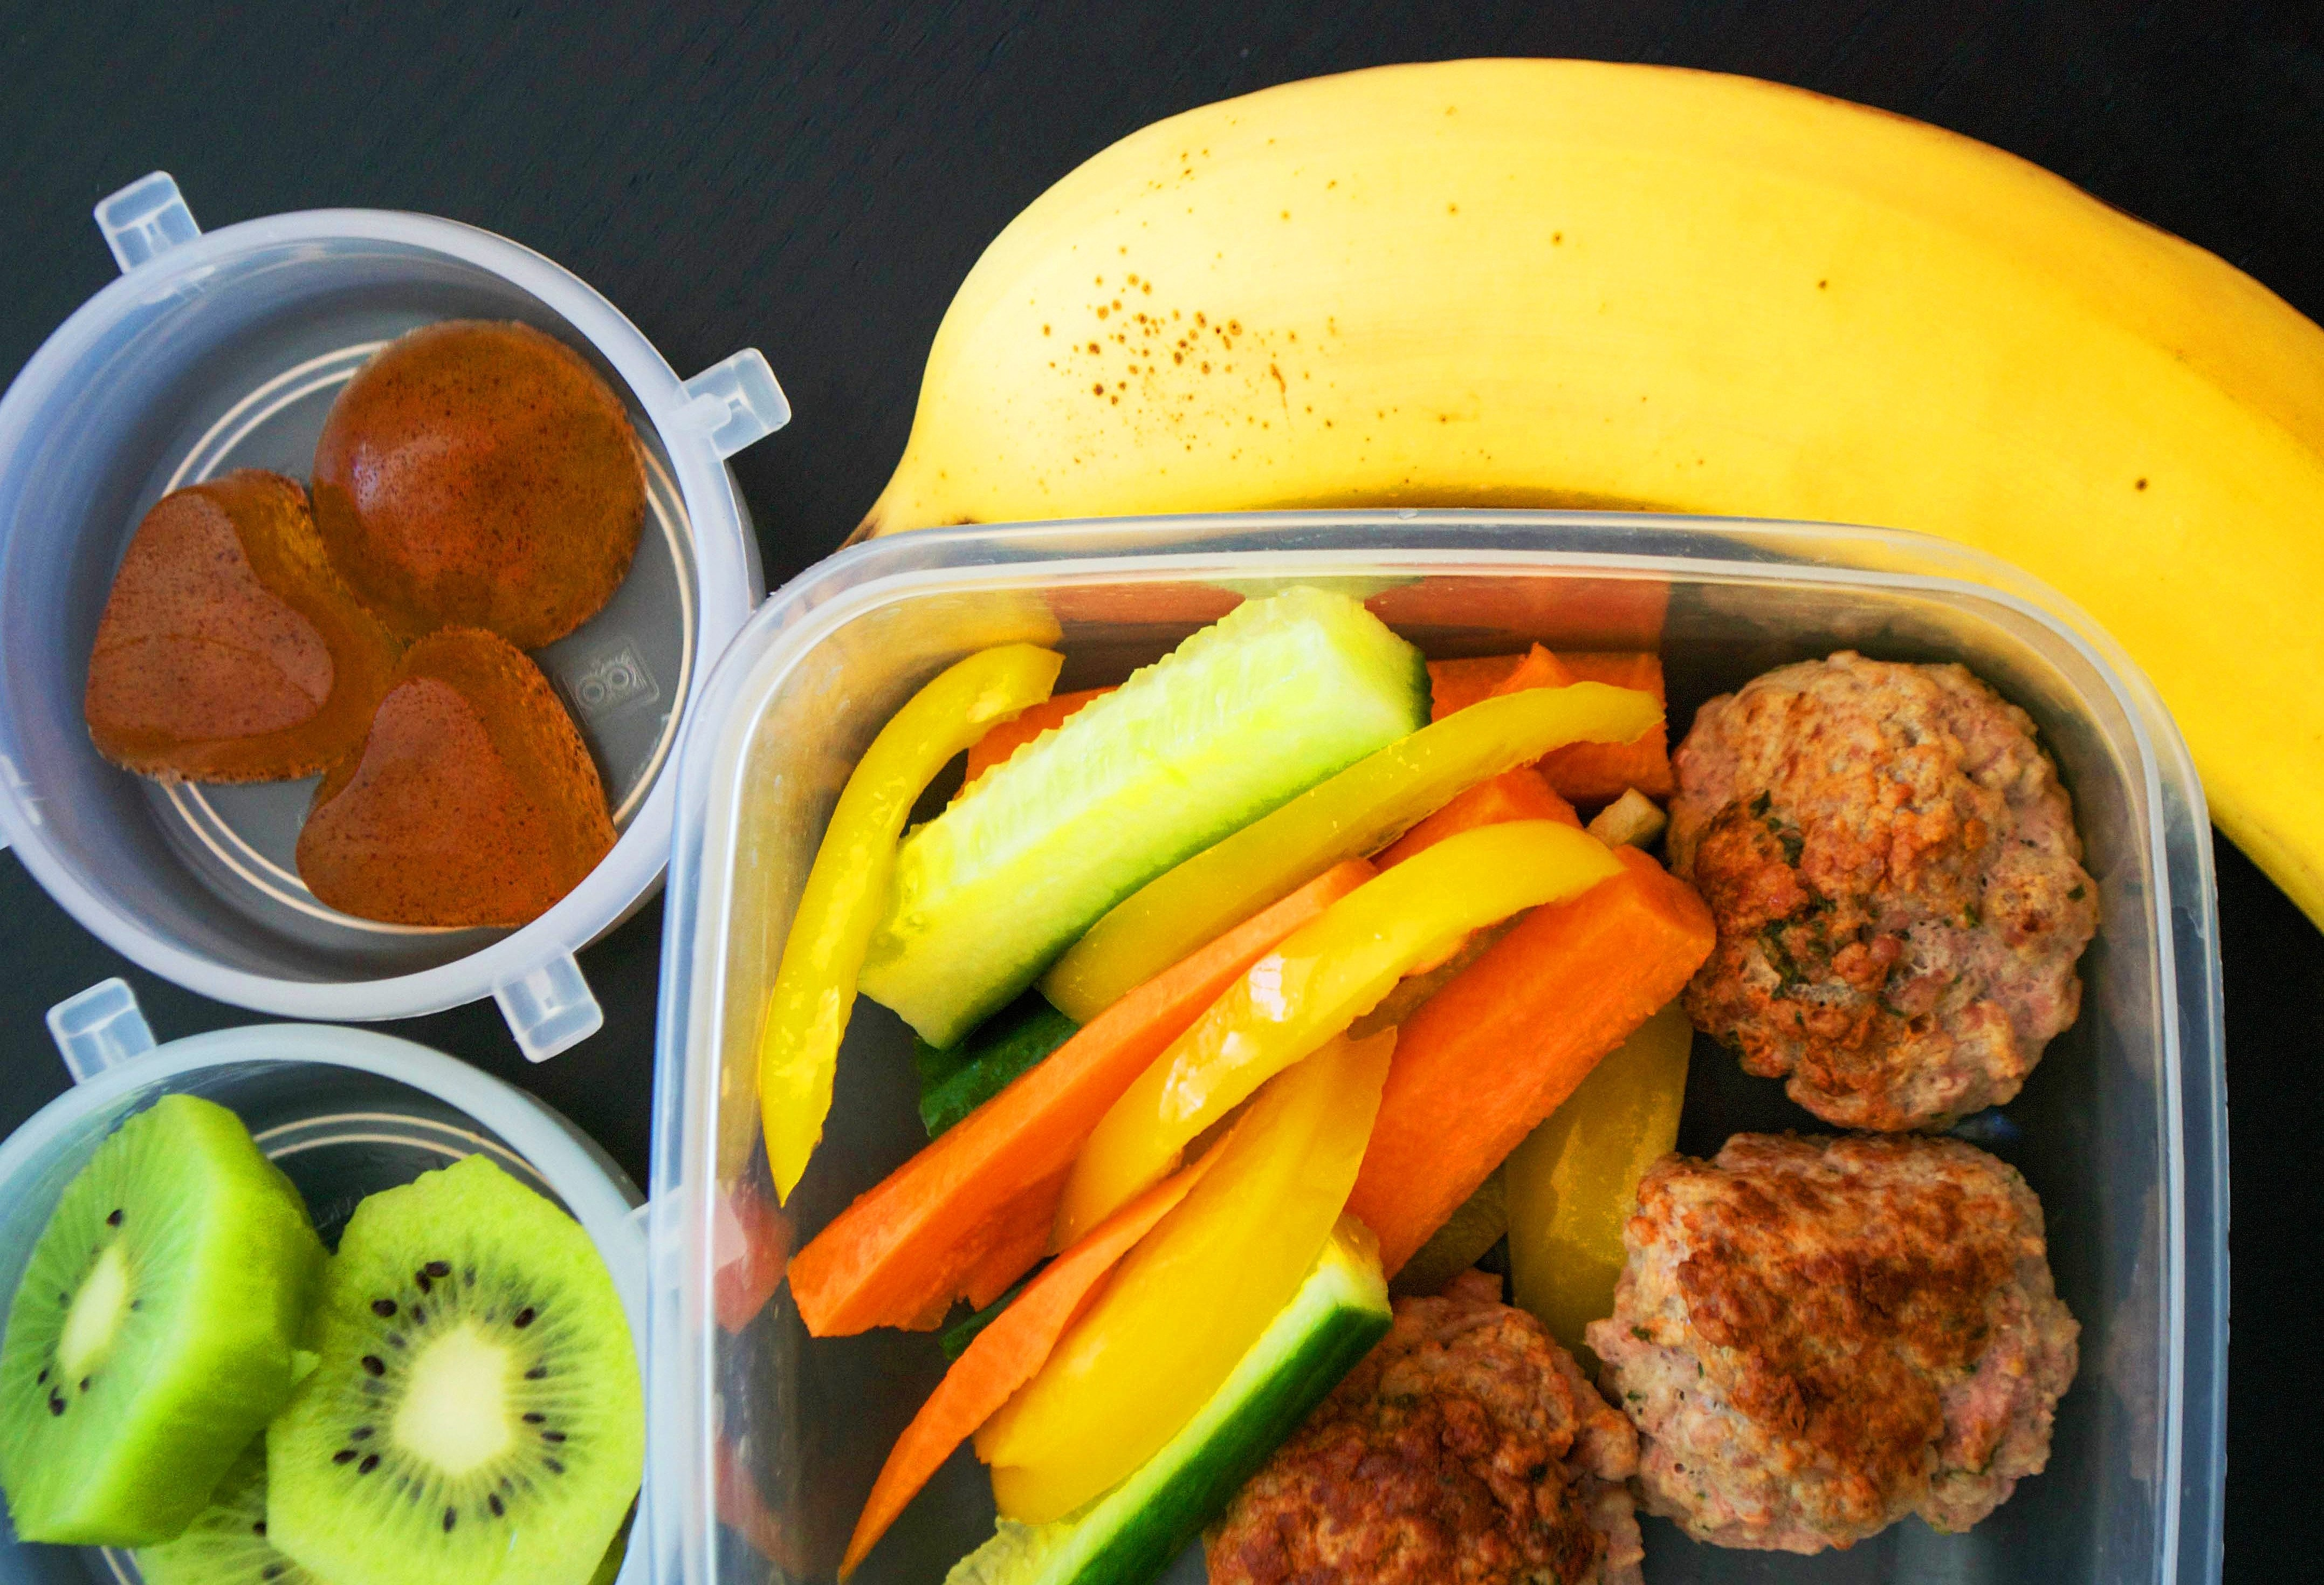 10 Wonderful Paleo Lunch Ideas For Kids 5 days of paleo packed lunches for kids and adults tooprimal eye 3 2021